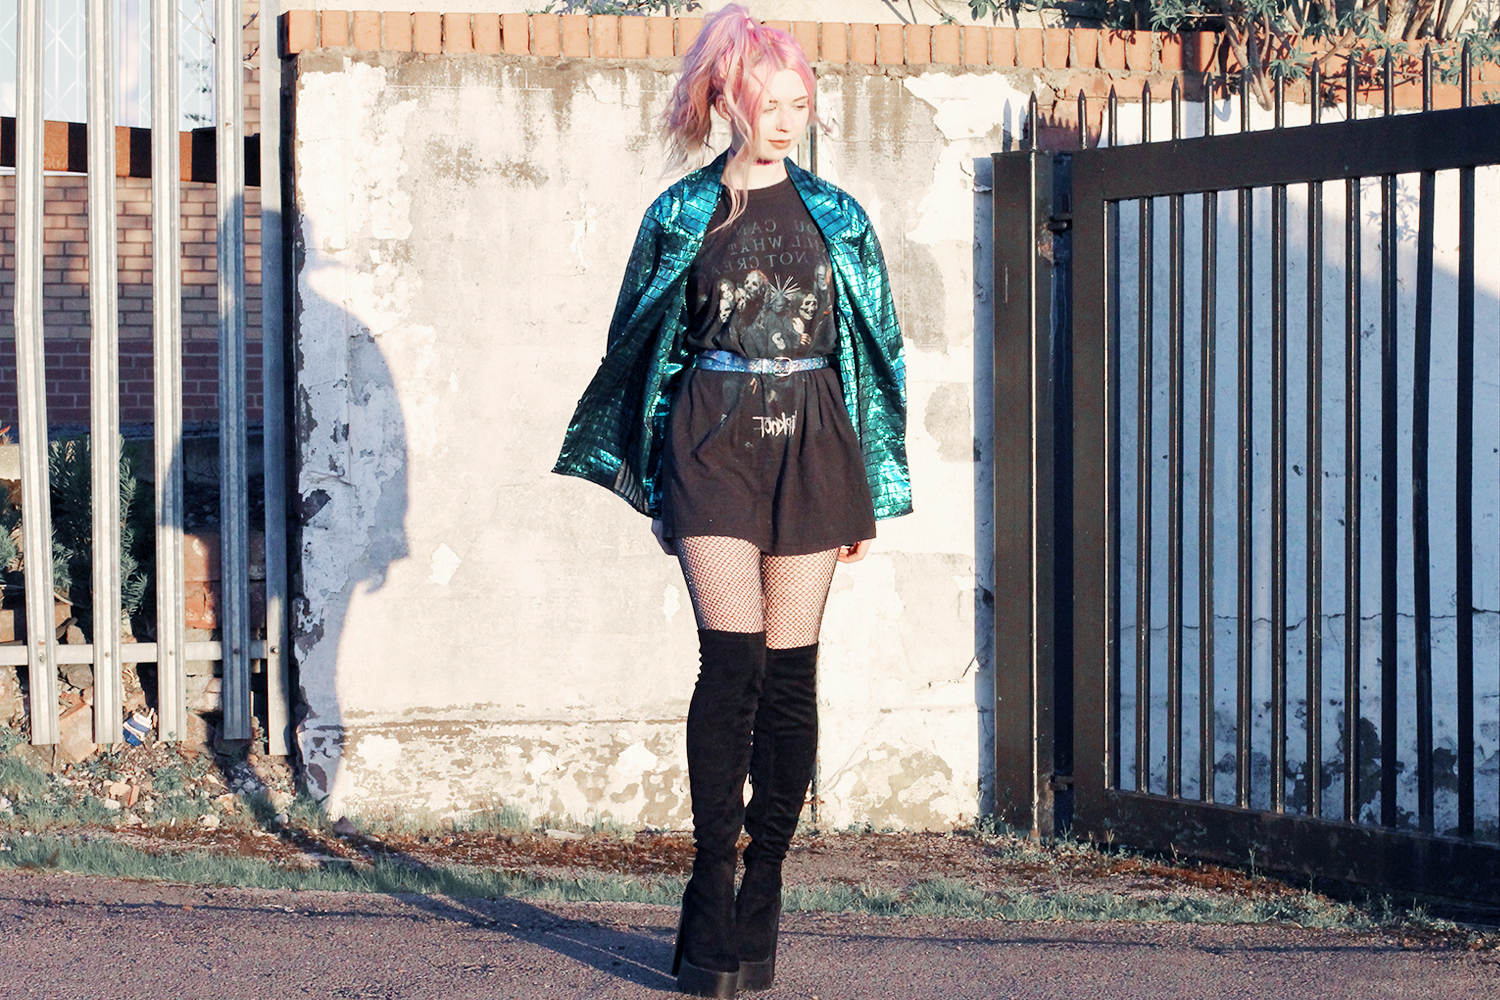 slipknot tee, thigh high boots, vintage jacket, band tshirt